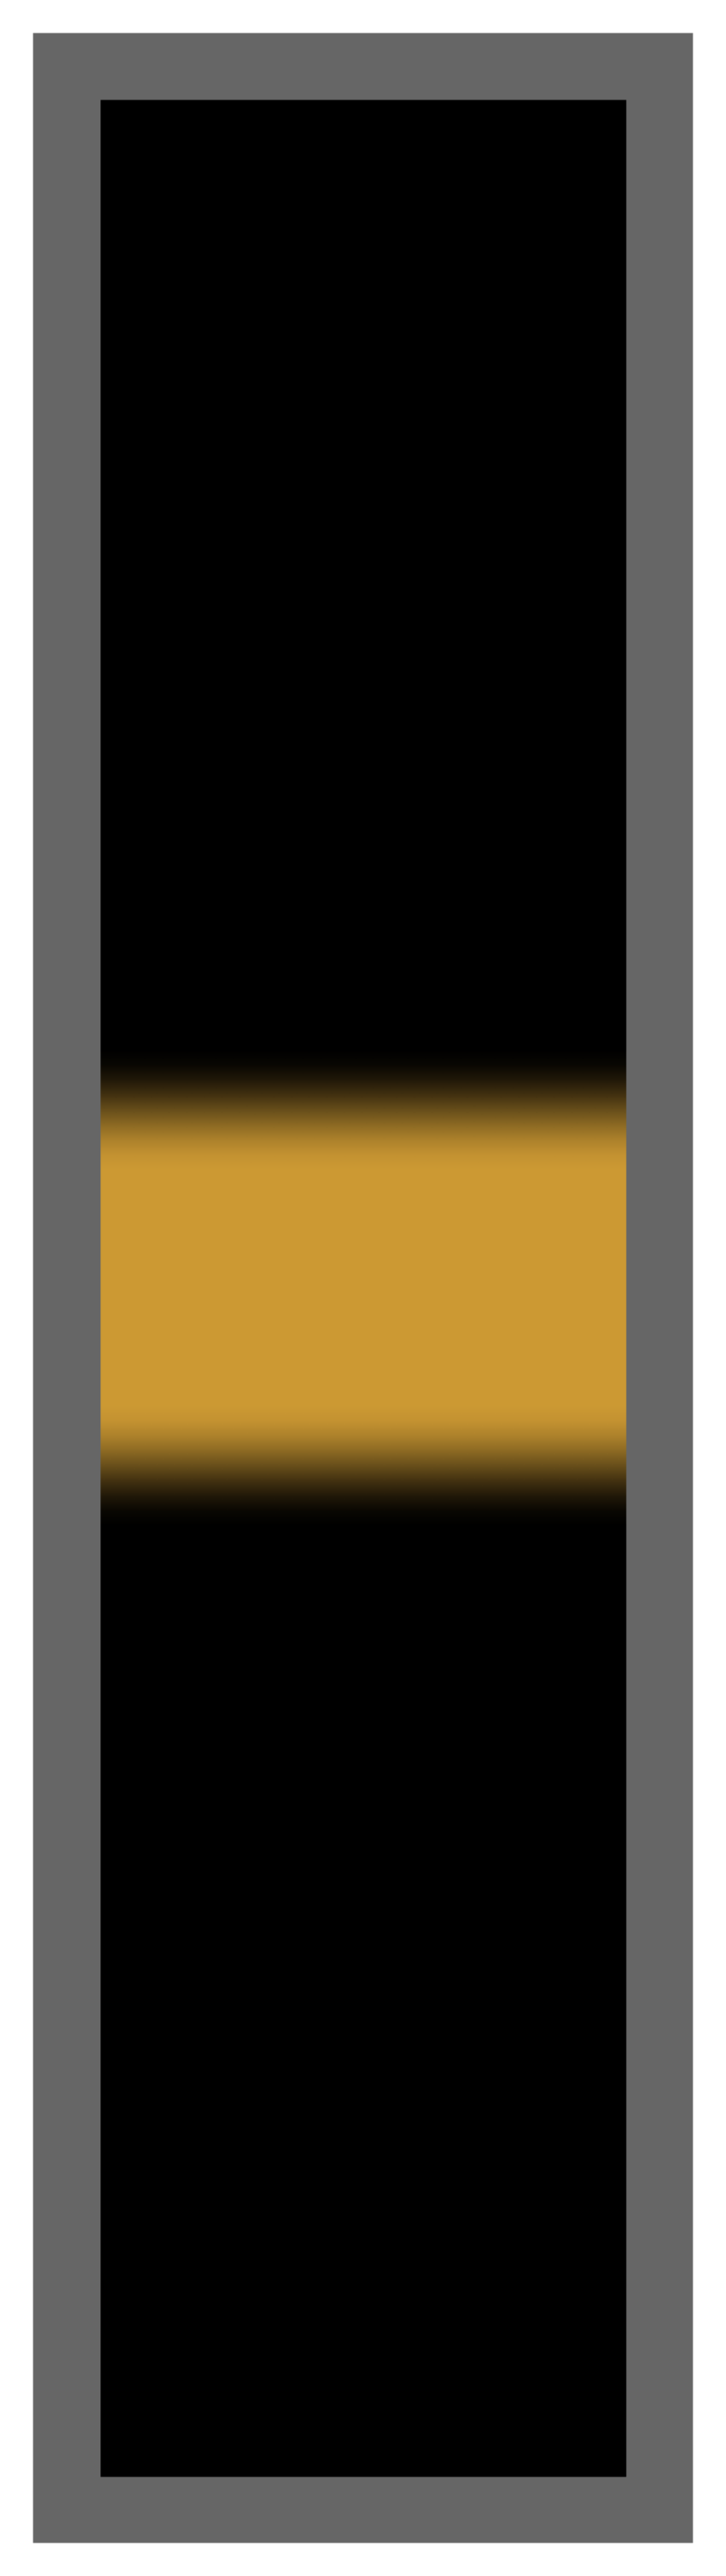 Black-Gold Center Tailless